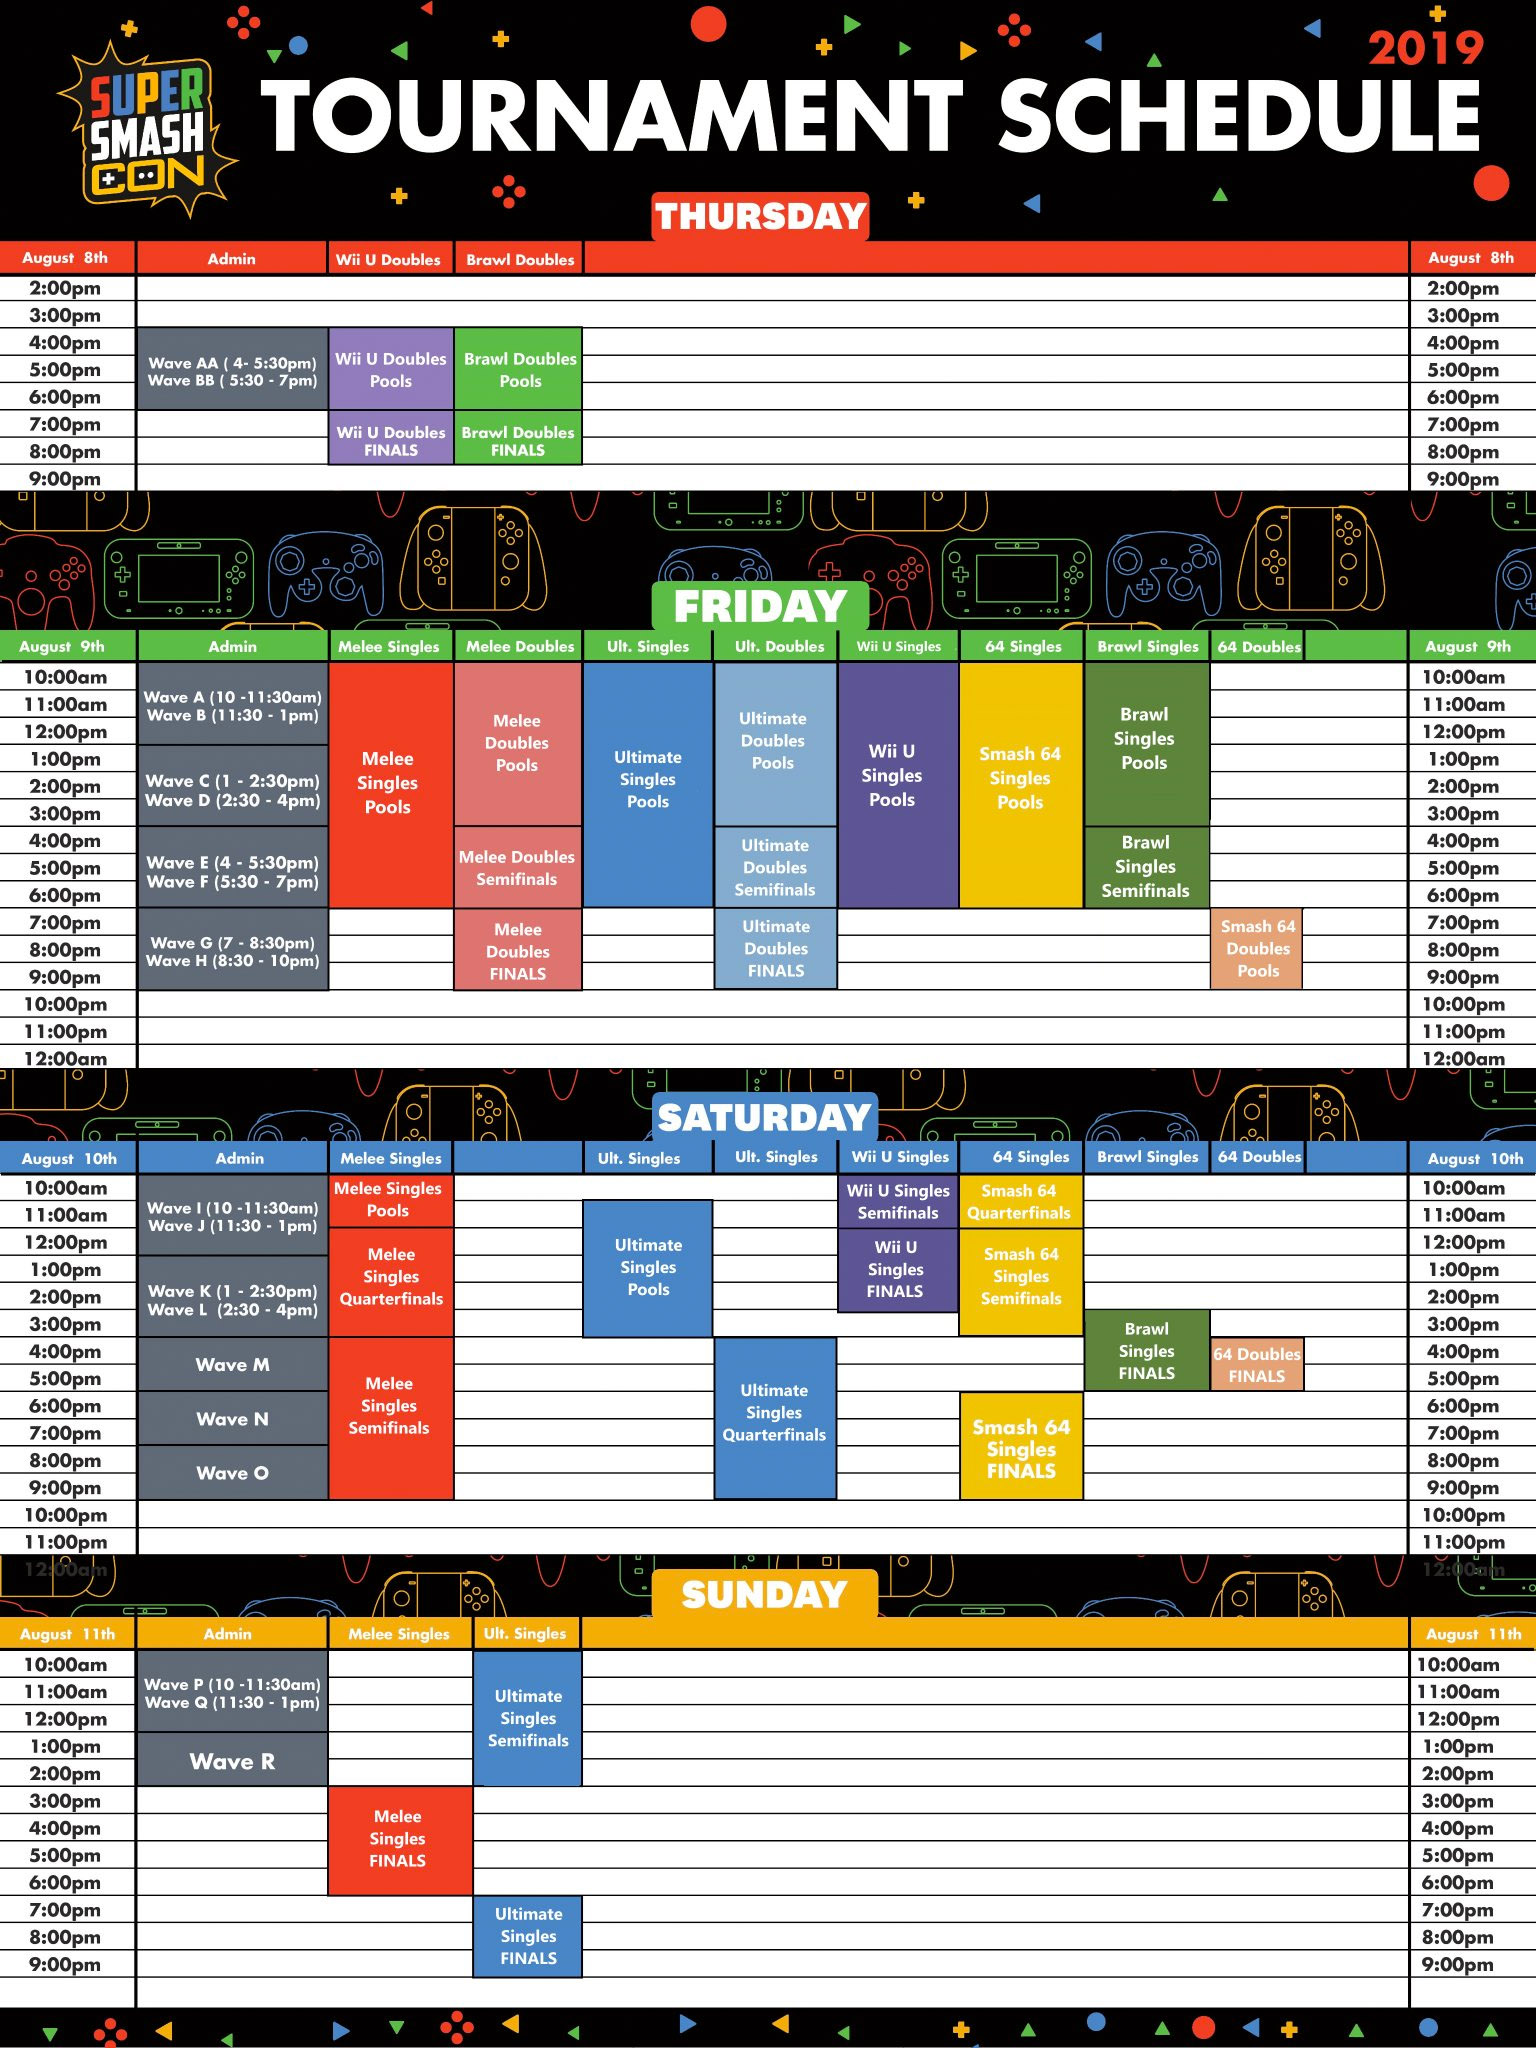 Super Smash Con 2019 Event Schedule 1 out of 1 image gallery